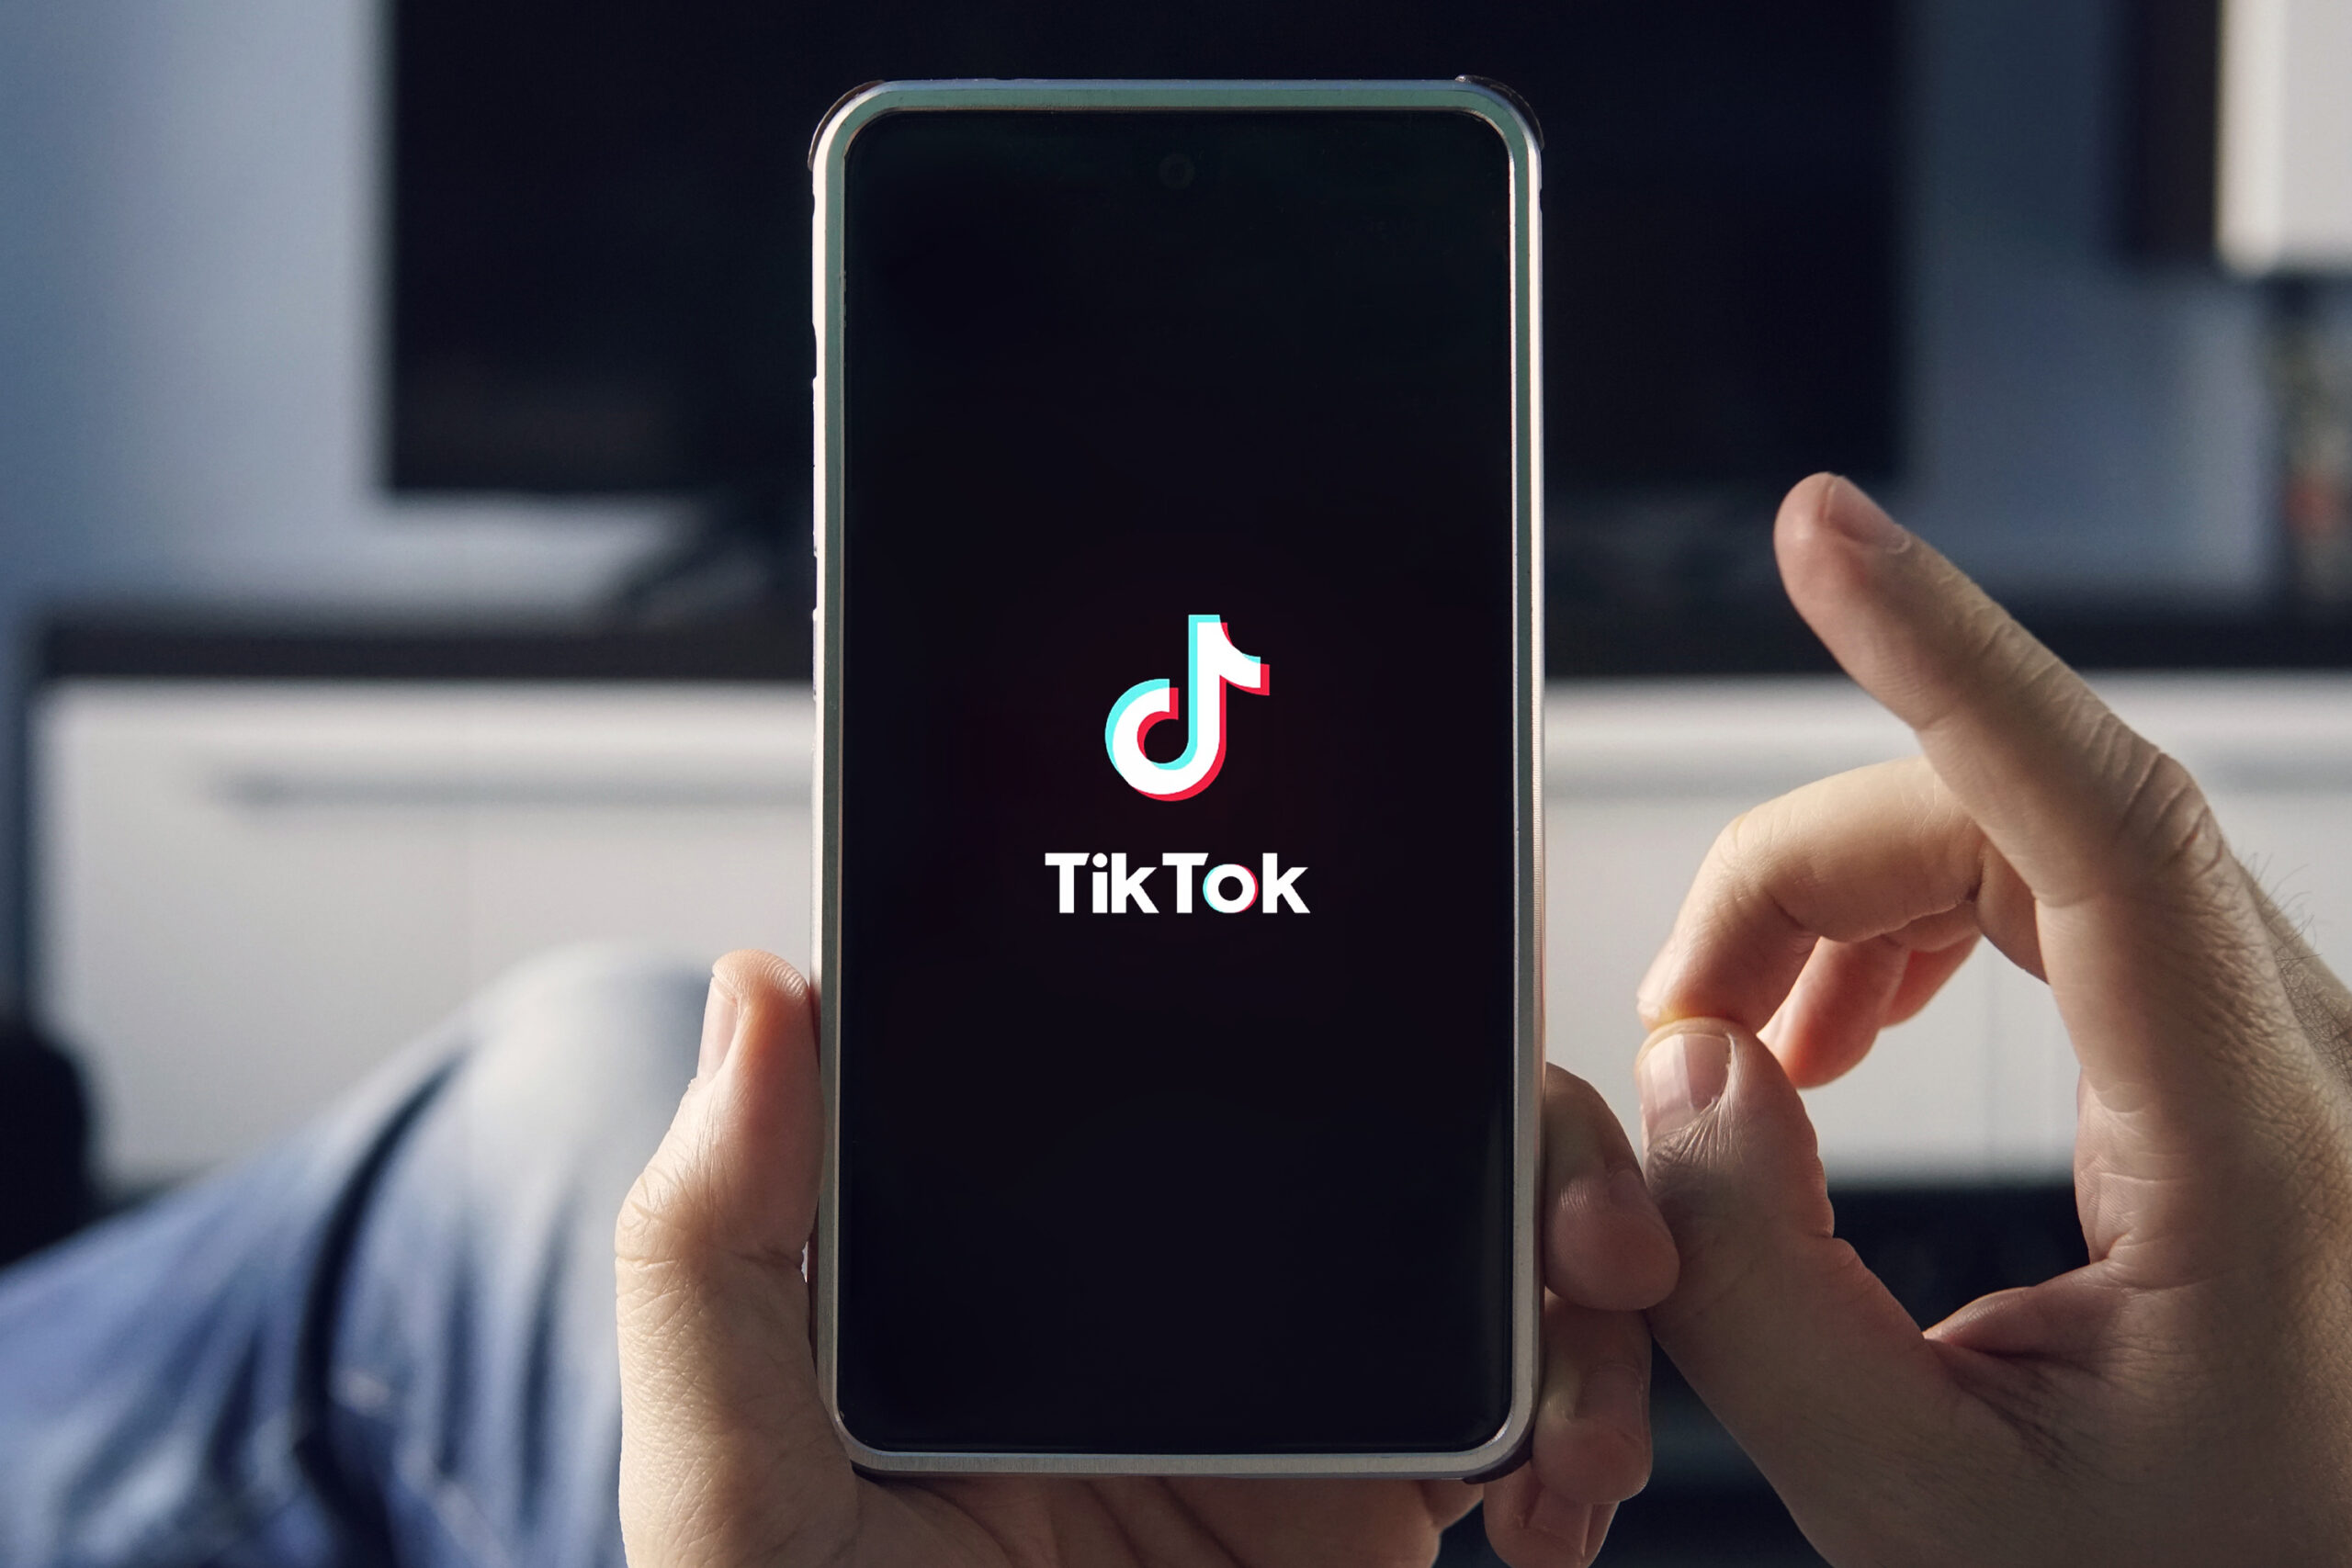 How Should We Protect Mobile Devices from Data Sharing Apps Like TikTok?